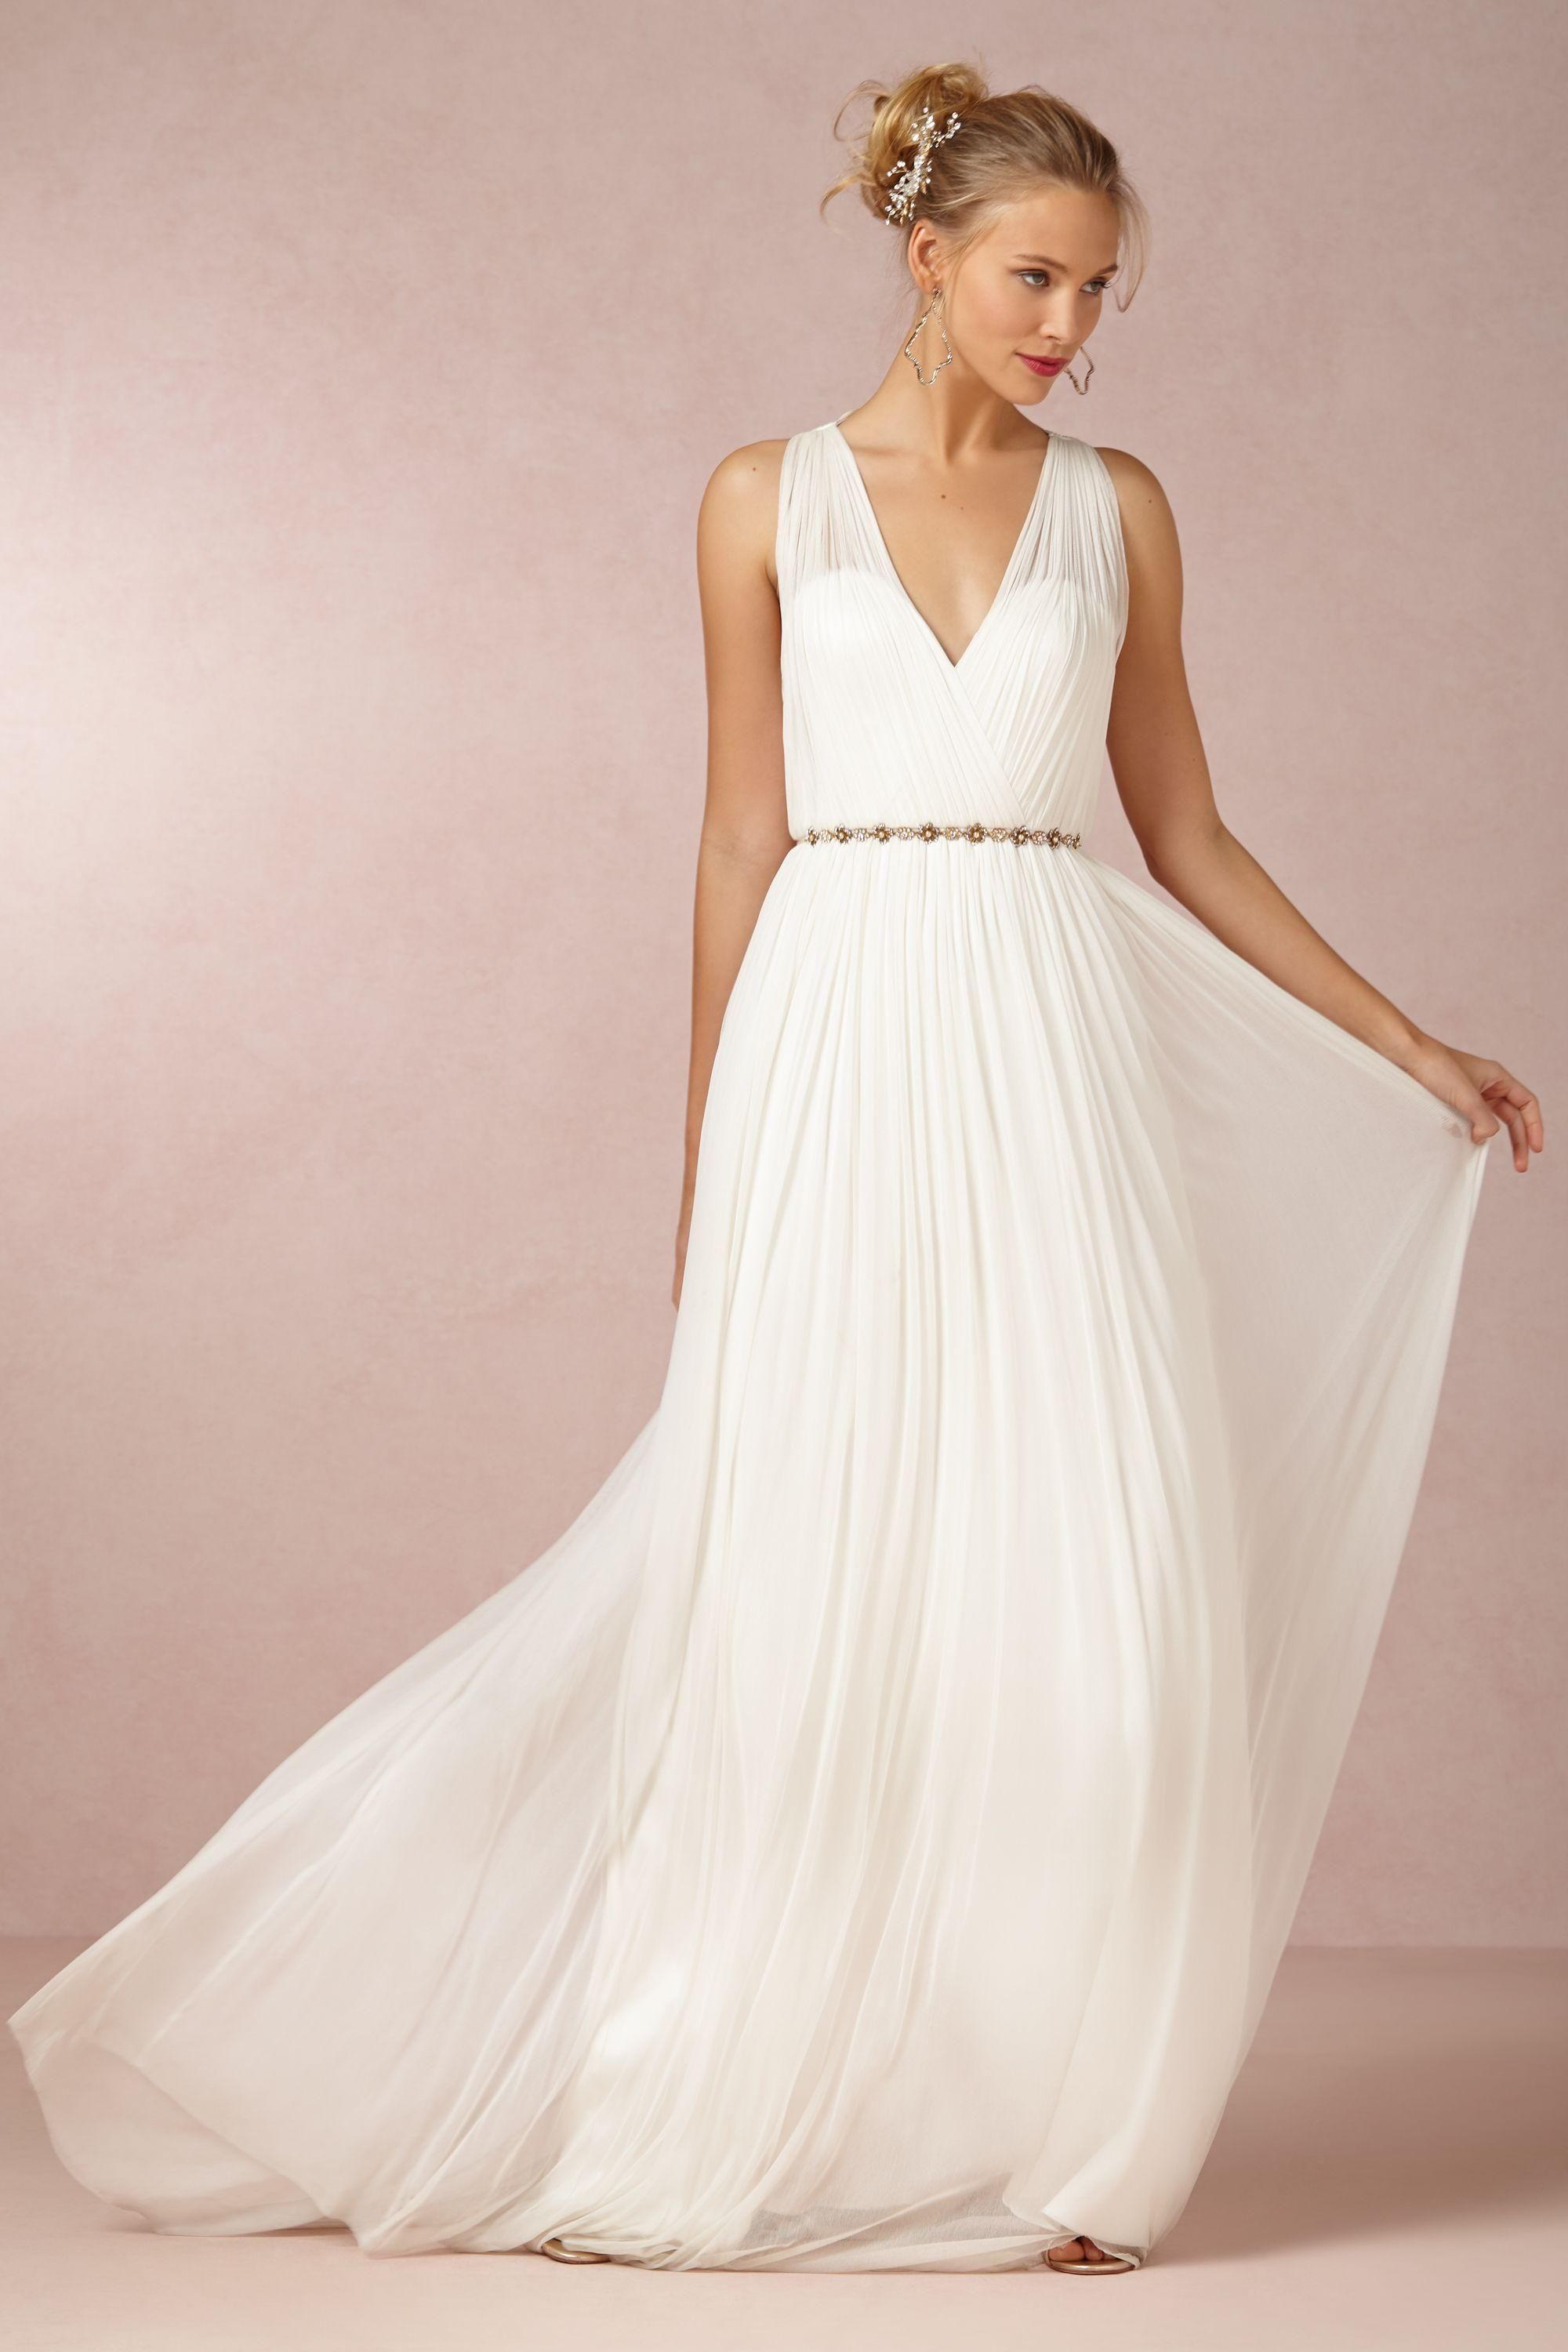 Pin by cathy white on ium already married pinterest gowns